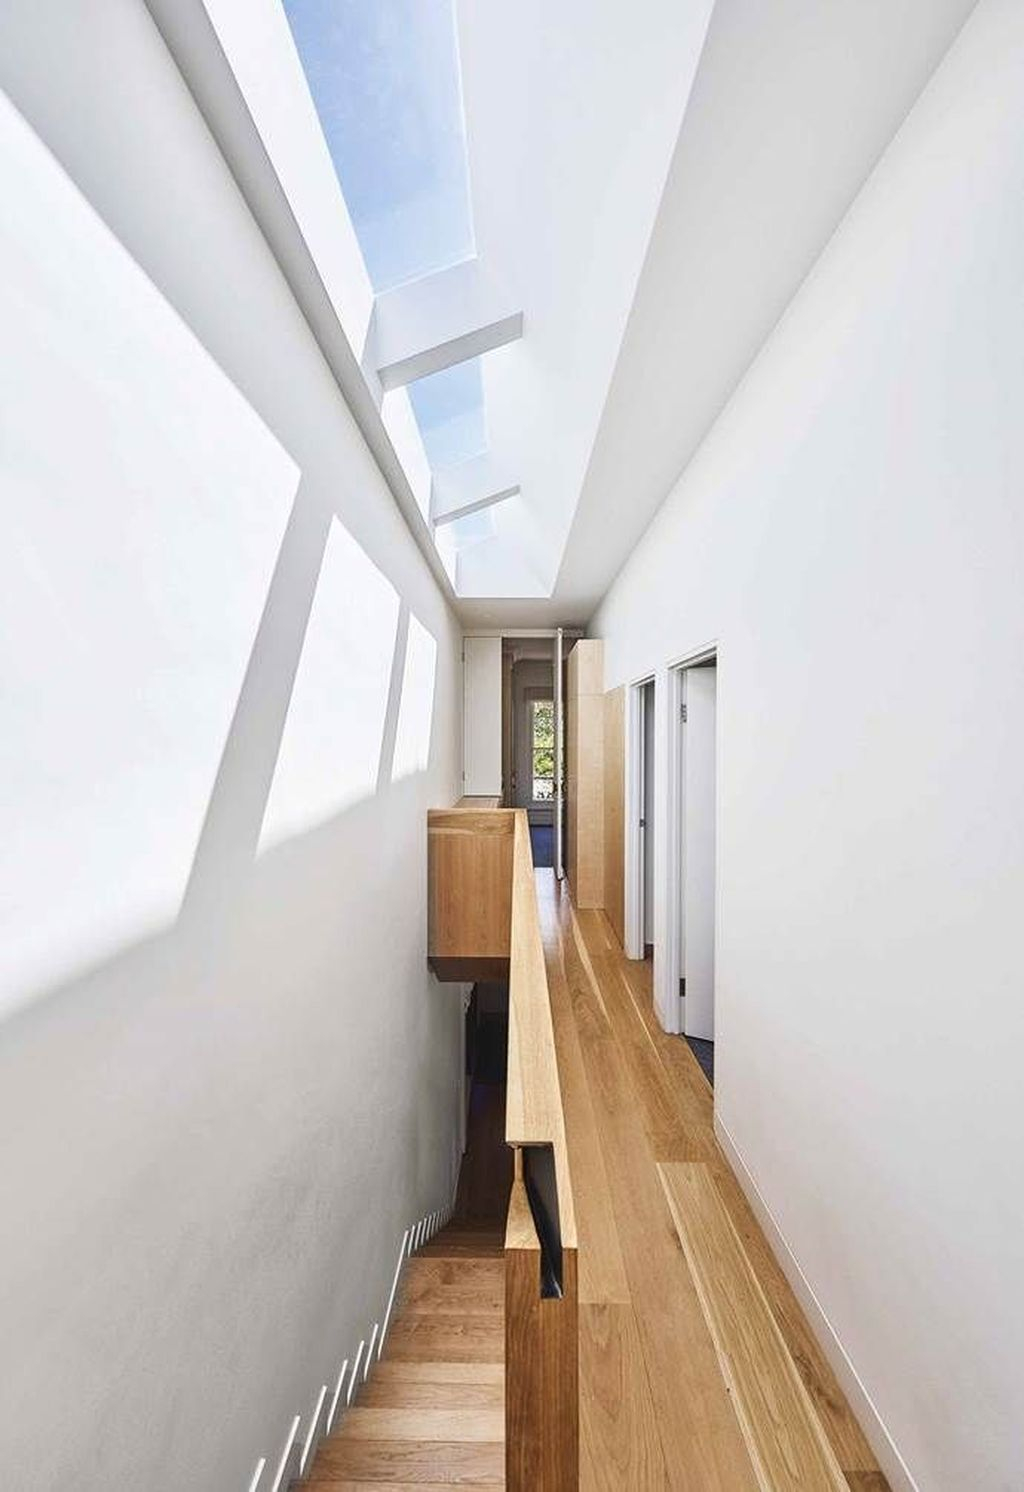 Unordinary House A Flooded Design Ideas With Light To Try Right Now 34